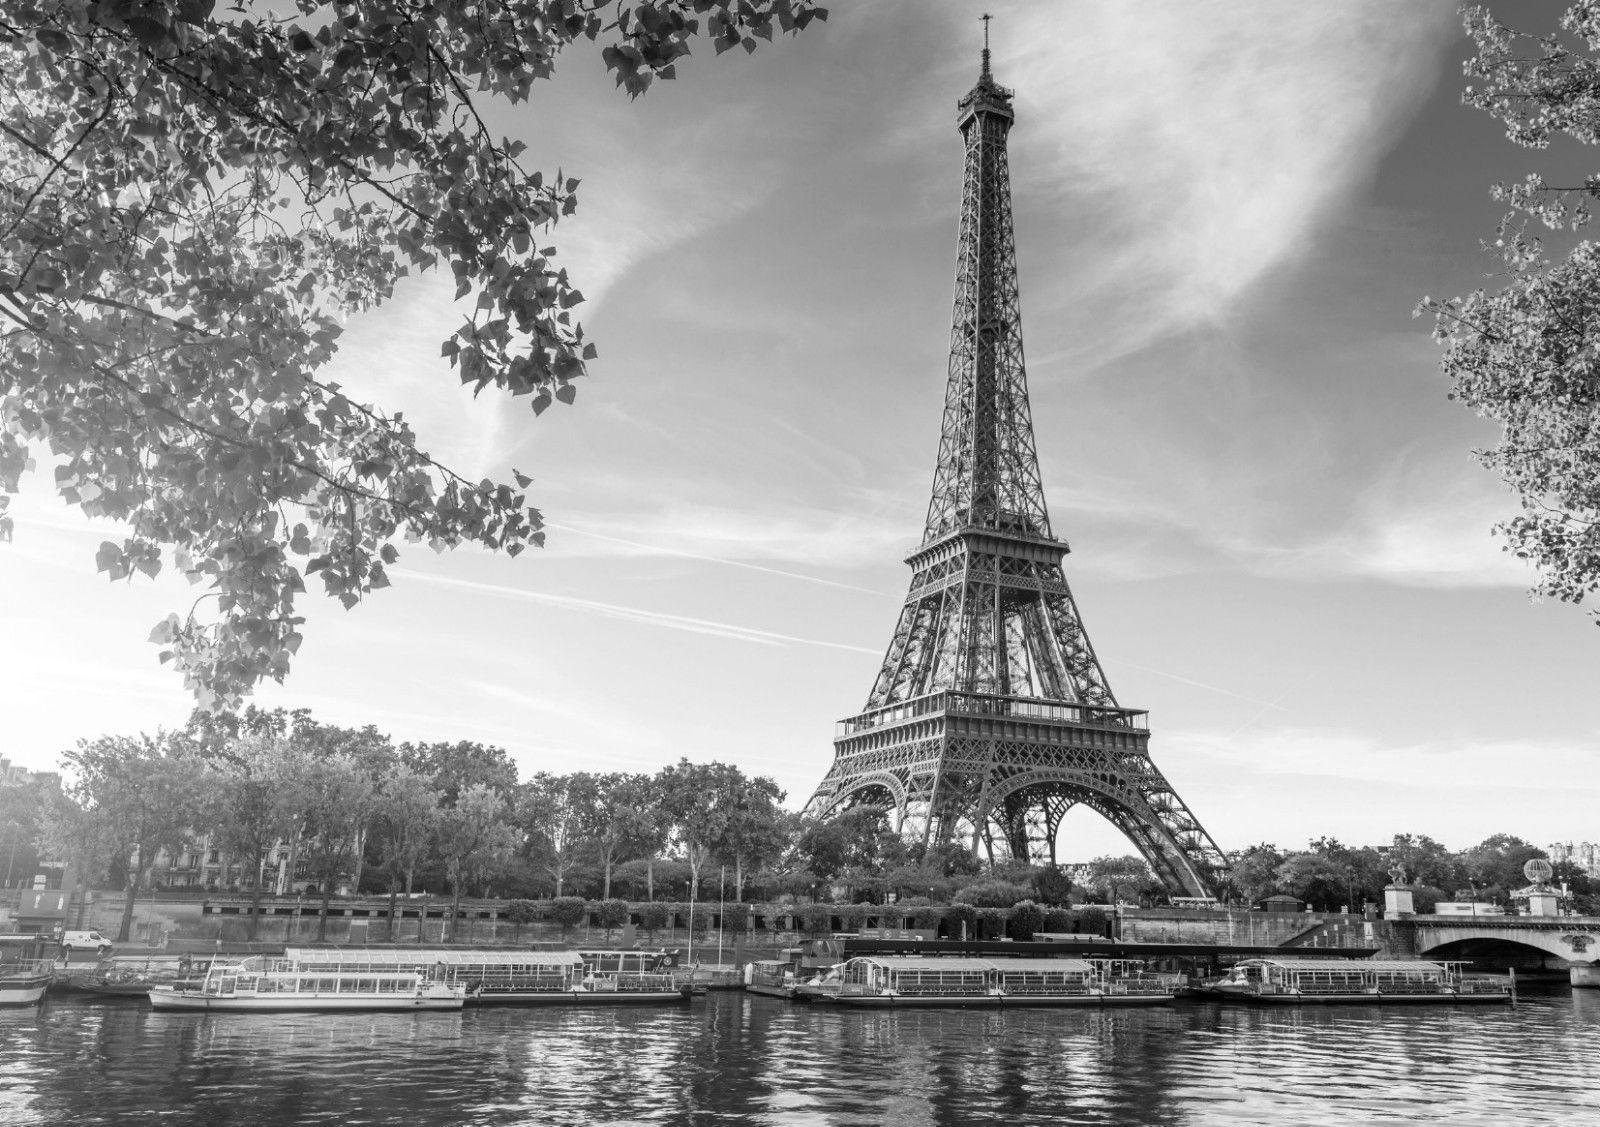 Eiffel tower paris landscape black white art silk poster 24x36inch 24x43inch wall accents decals wall accents stickers from wangzhi hao8 12 05 dhgate